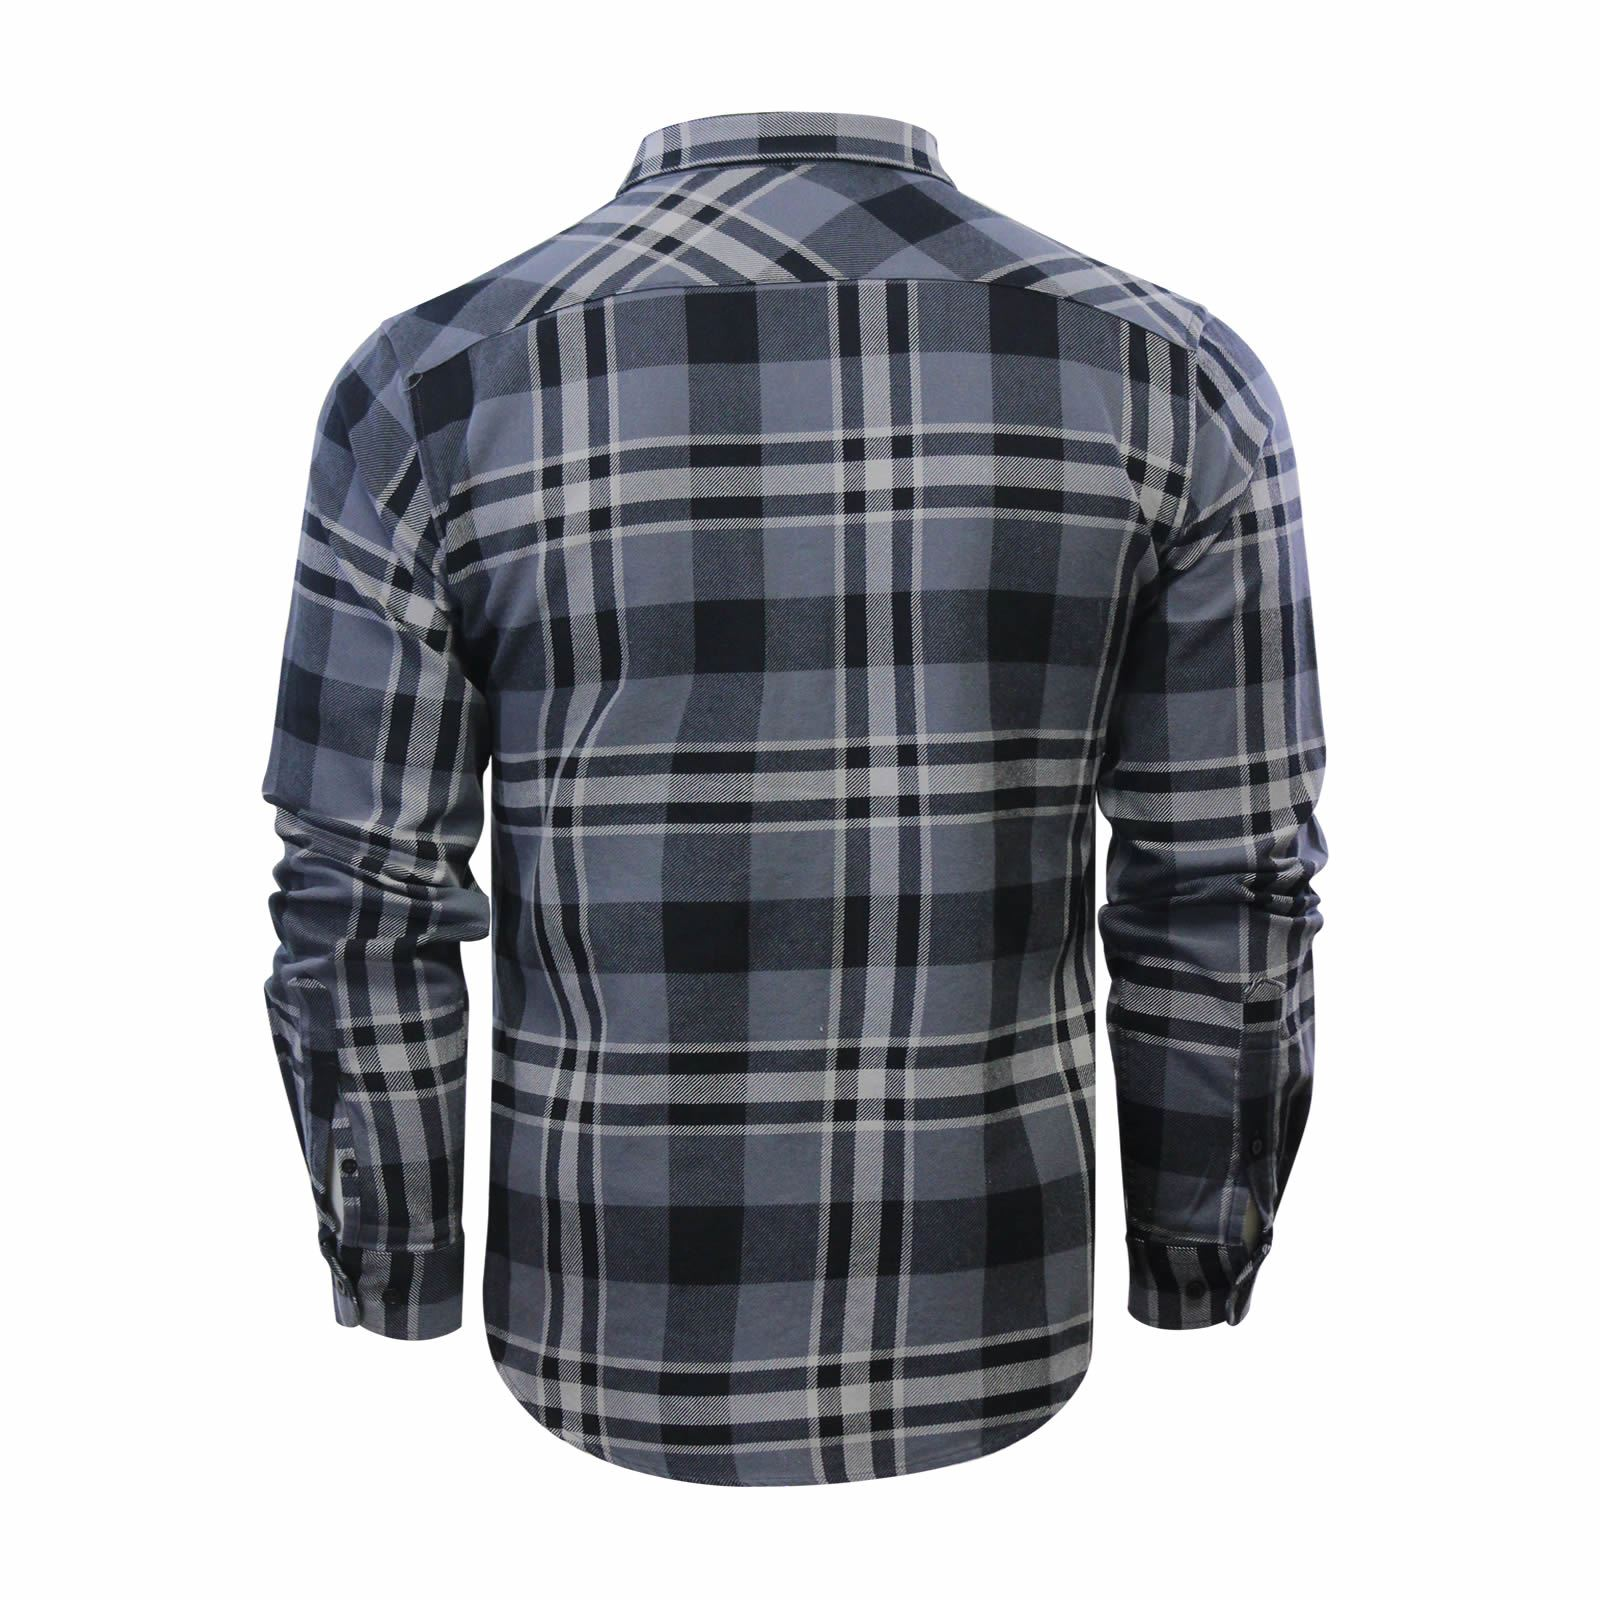 miniature 3 - Mens Check Shirt Crosshatch arizonica Flannel Brushed Cotton Long Manche